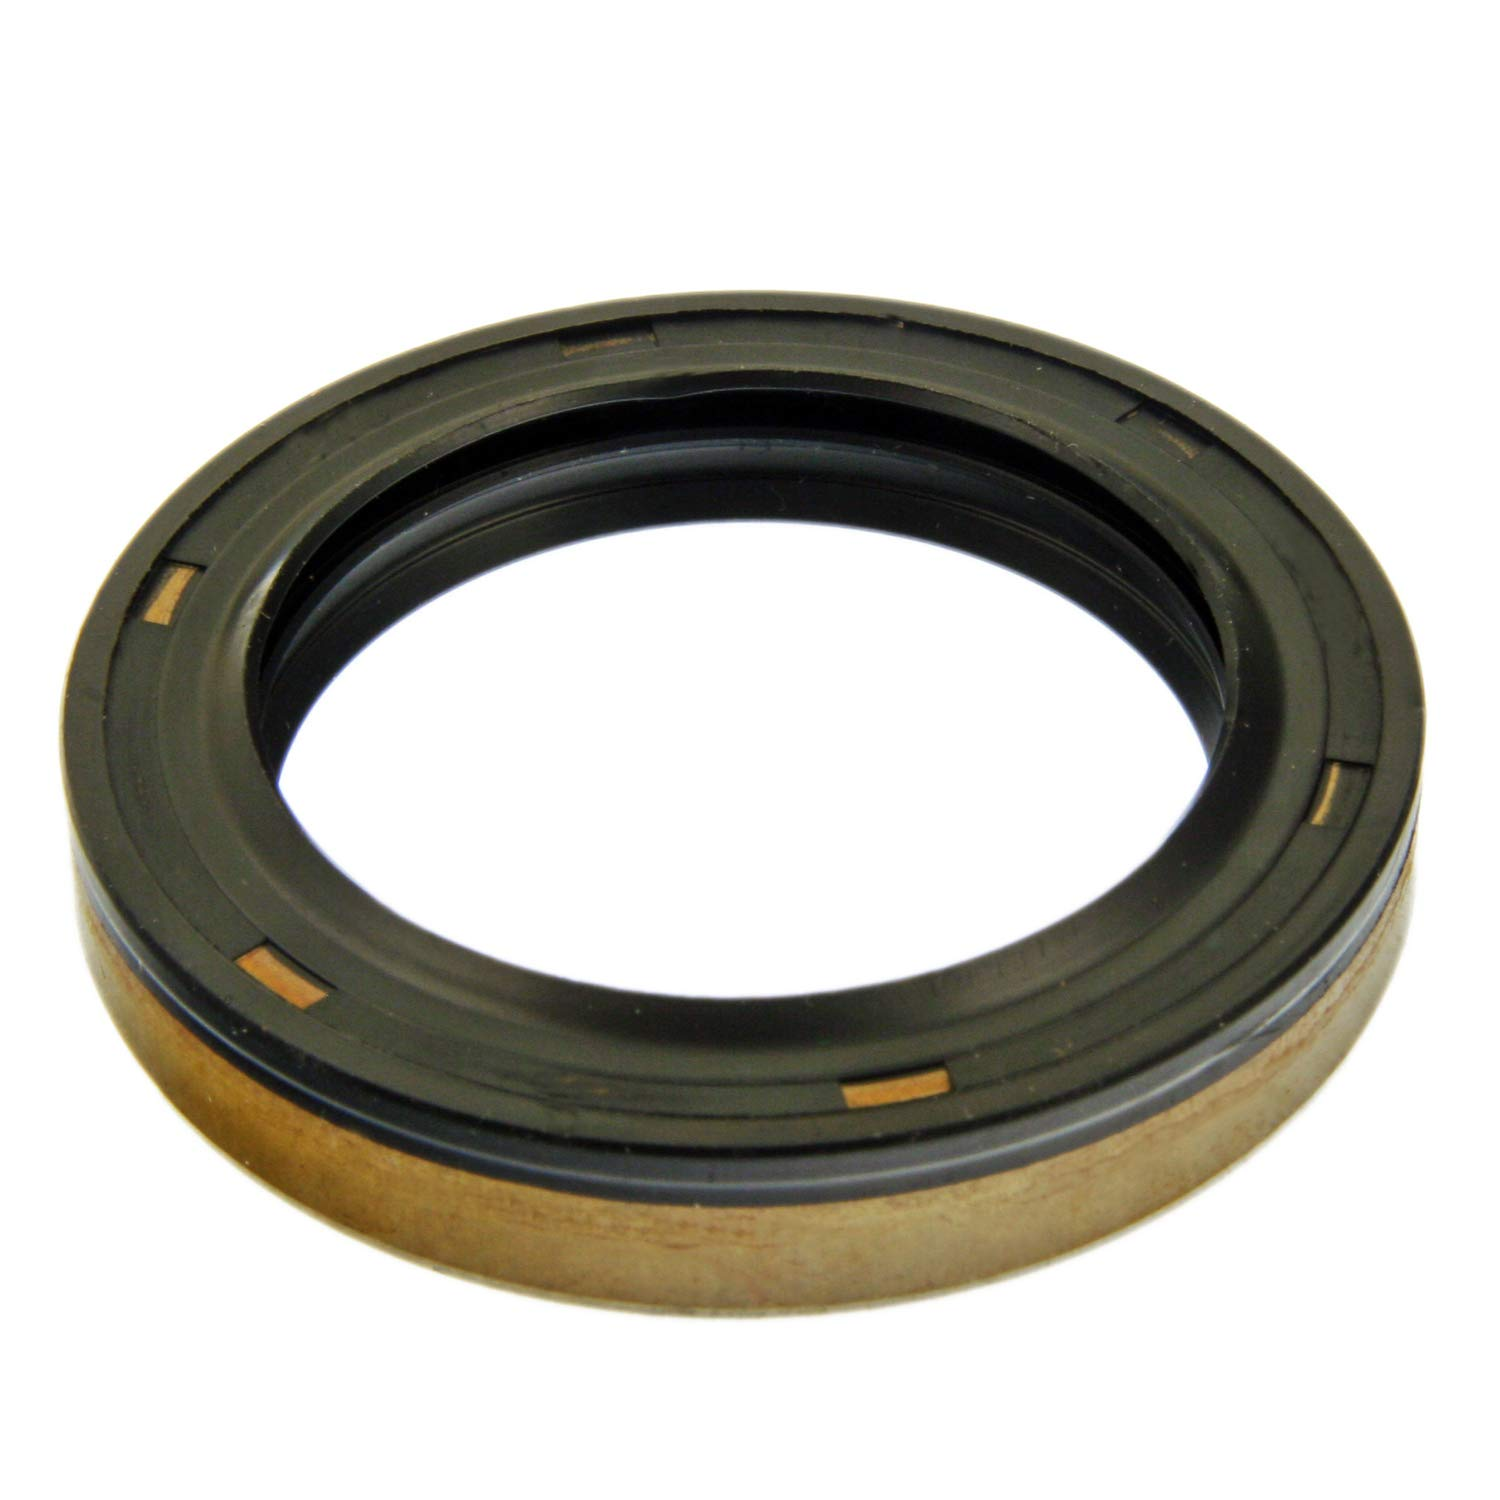 ACDelco 710300 Advantage Crankshaft Front Oil Seal